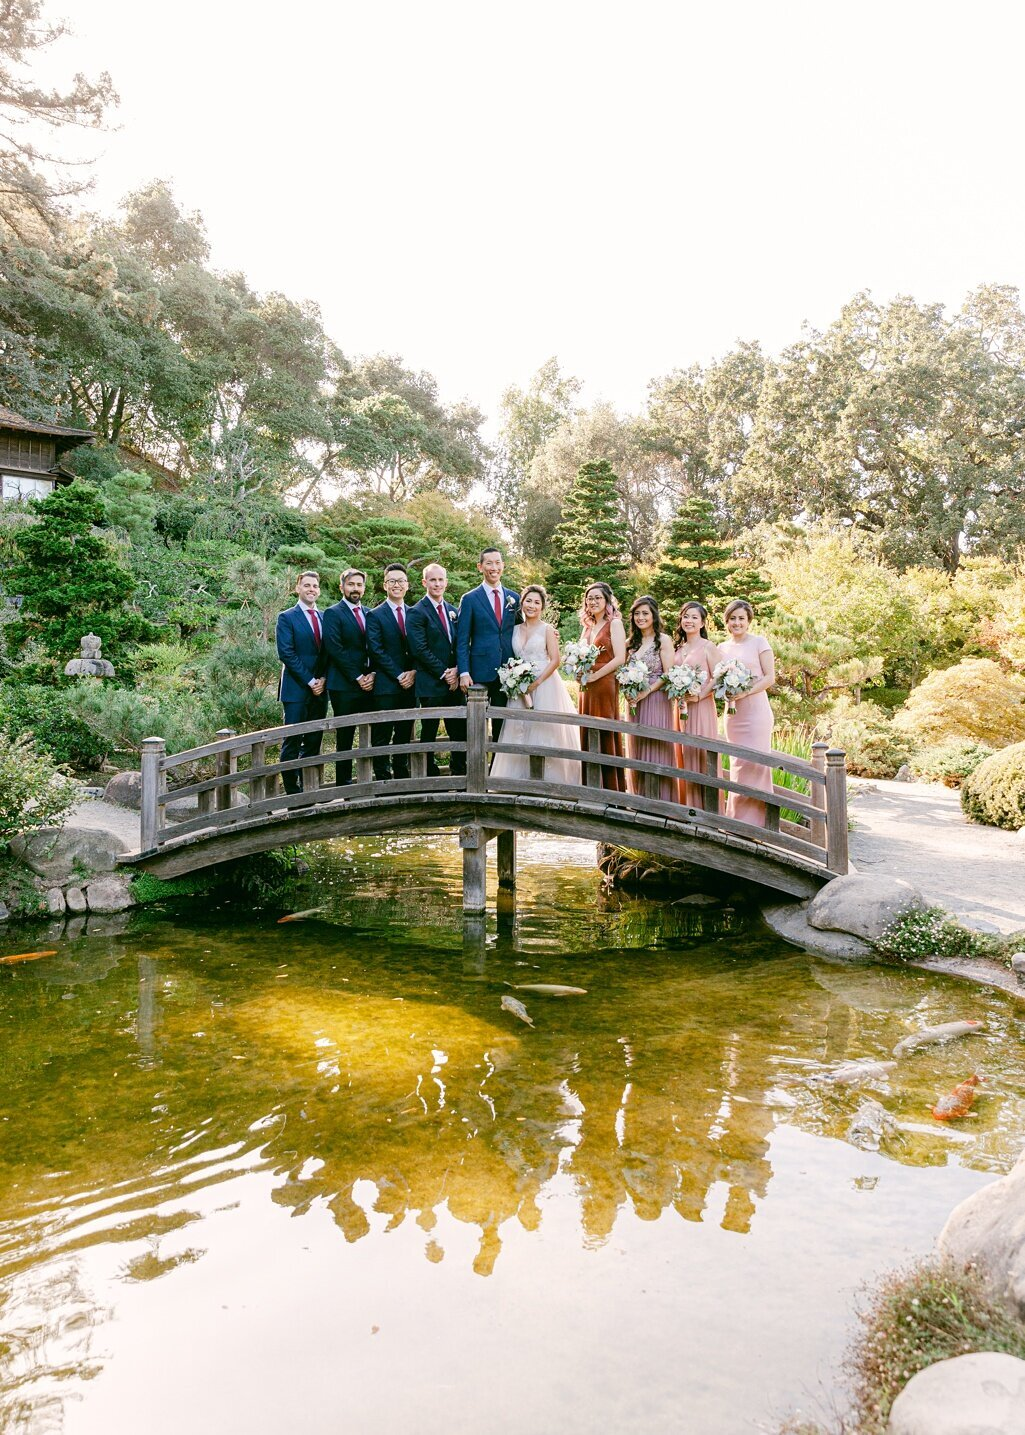 Jessie-Barksdale-Photography_Hakone-Gardens-Saratoga_San-Francisco-Bay-Area-Wedding-Photographer_0053